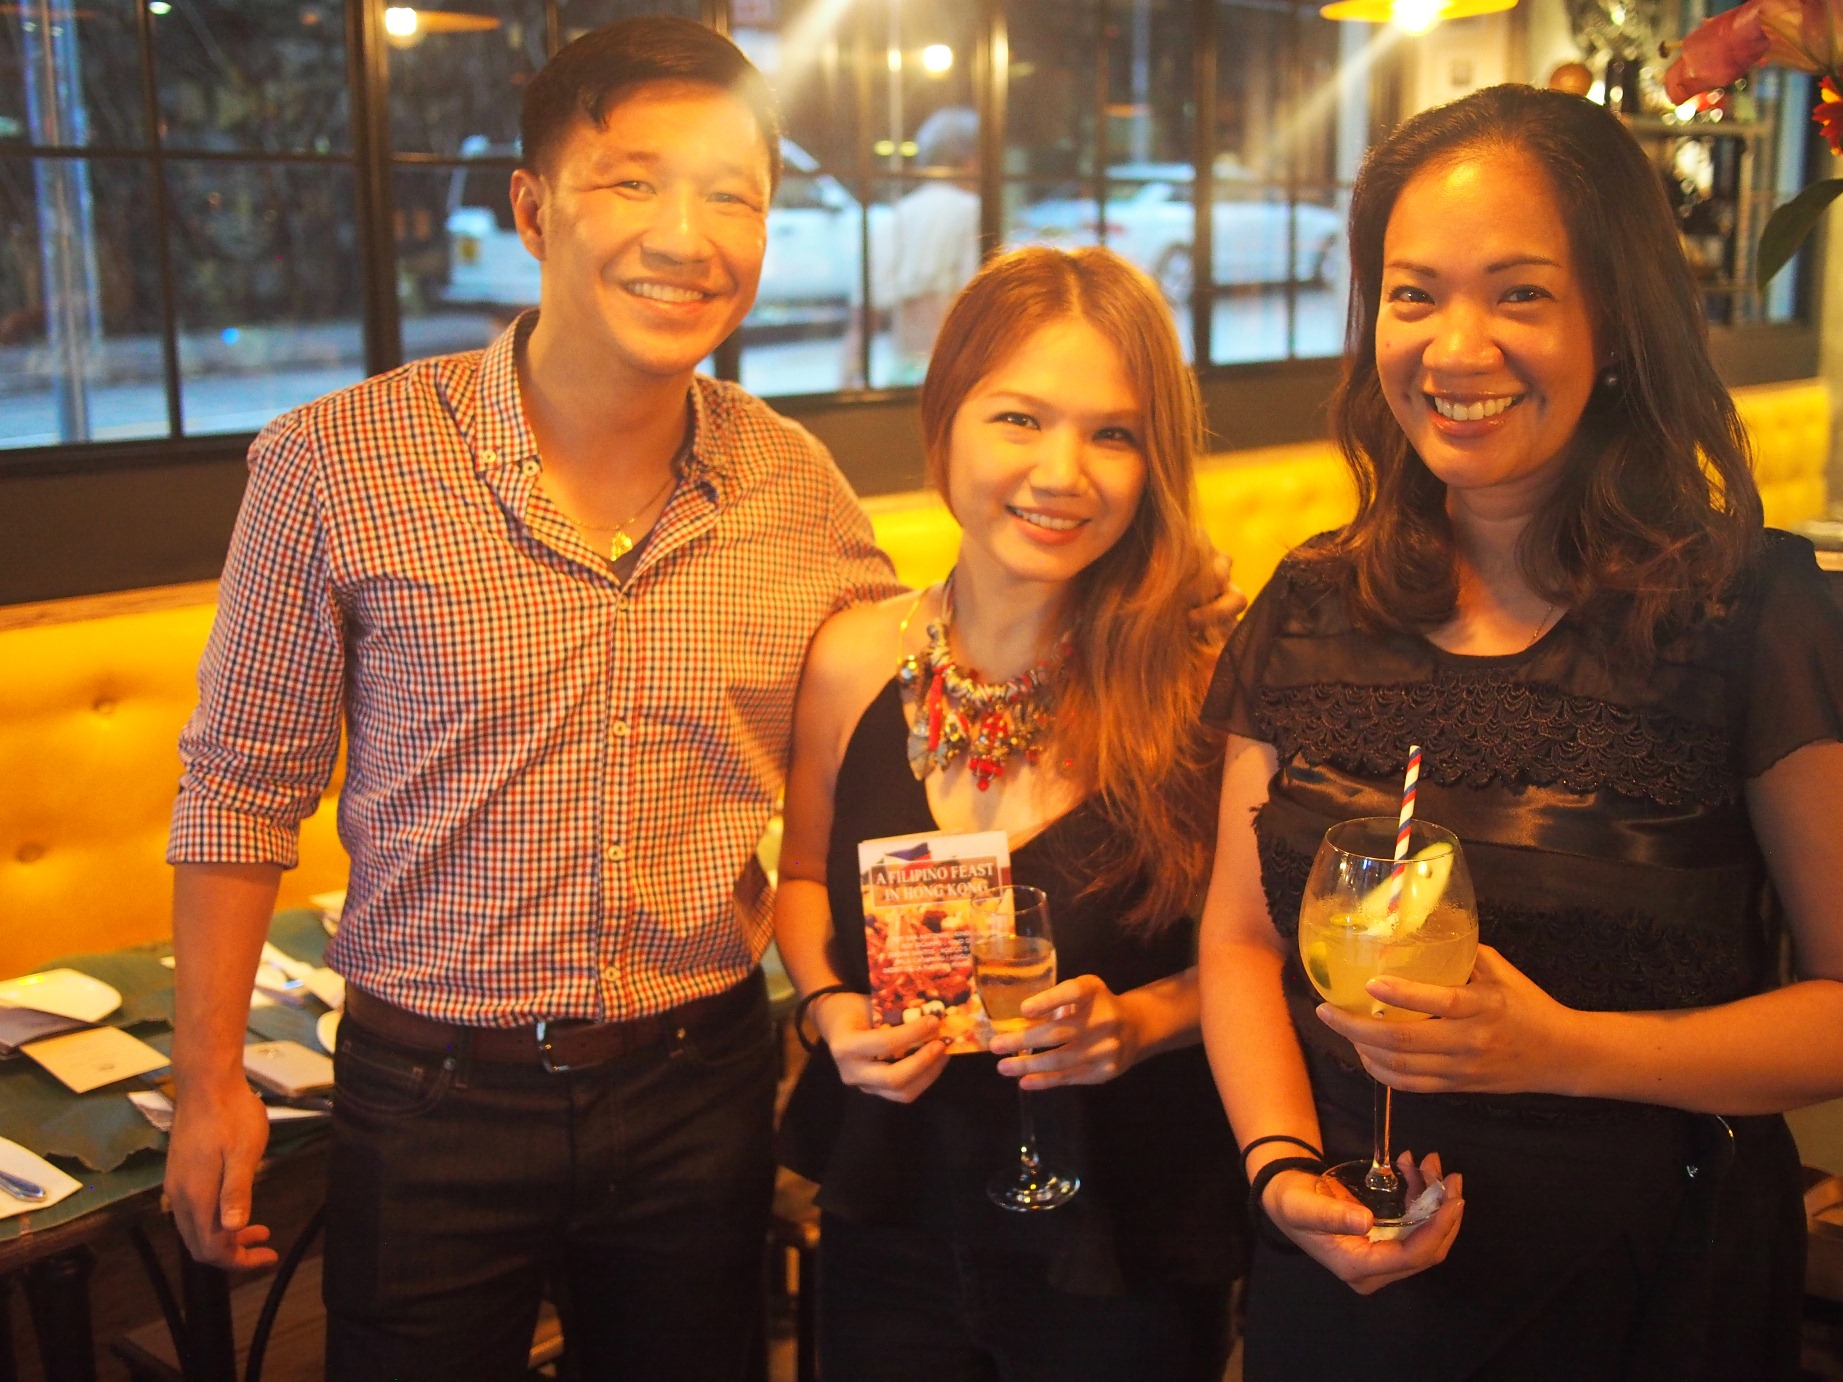 Nicky Lozano of Memz Chicharon, Cheryl Tiu, Maita Quesada of The Moment Group